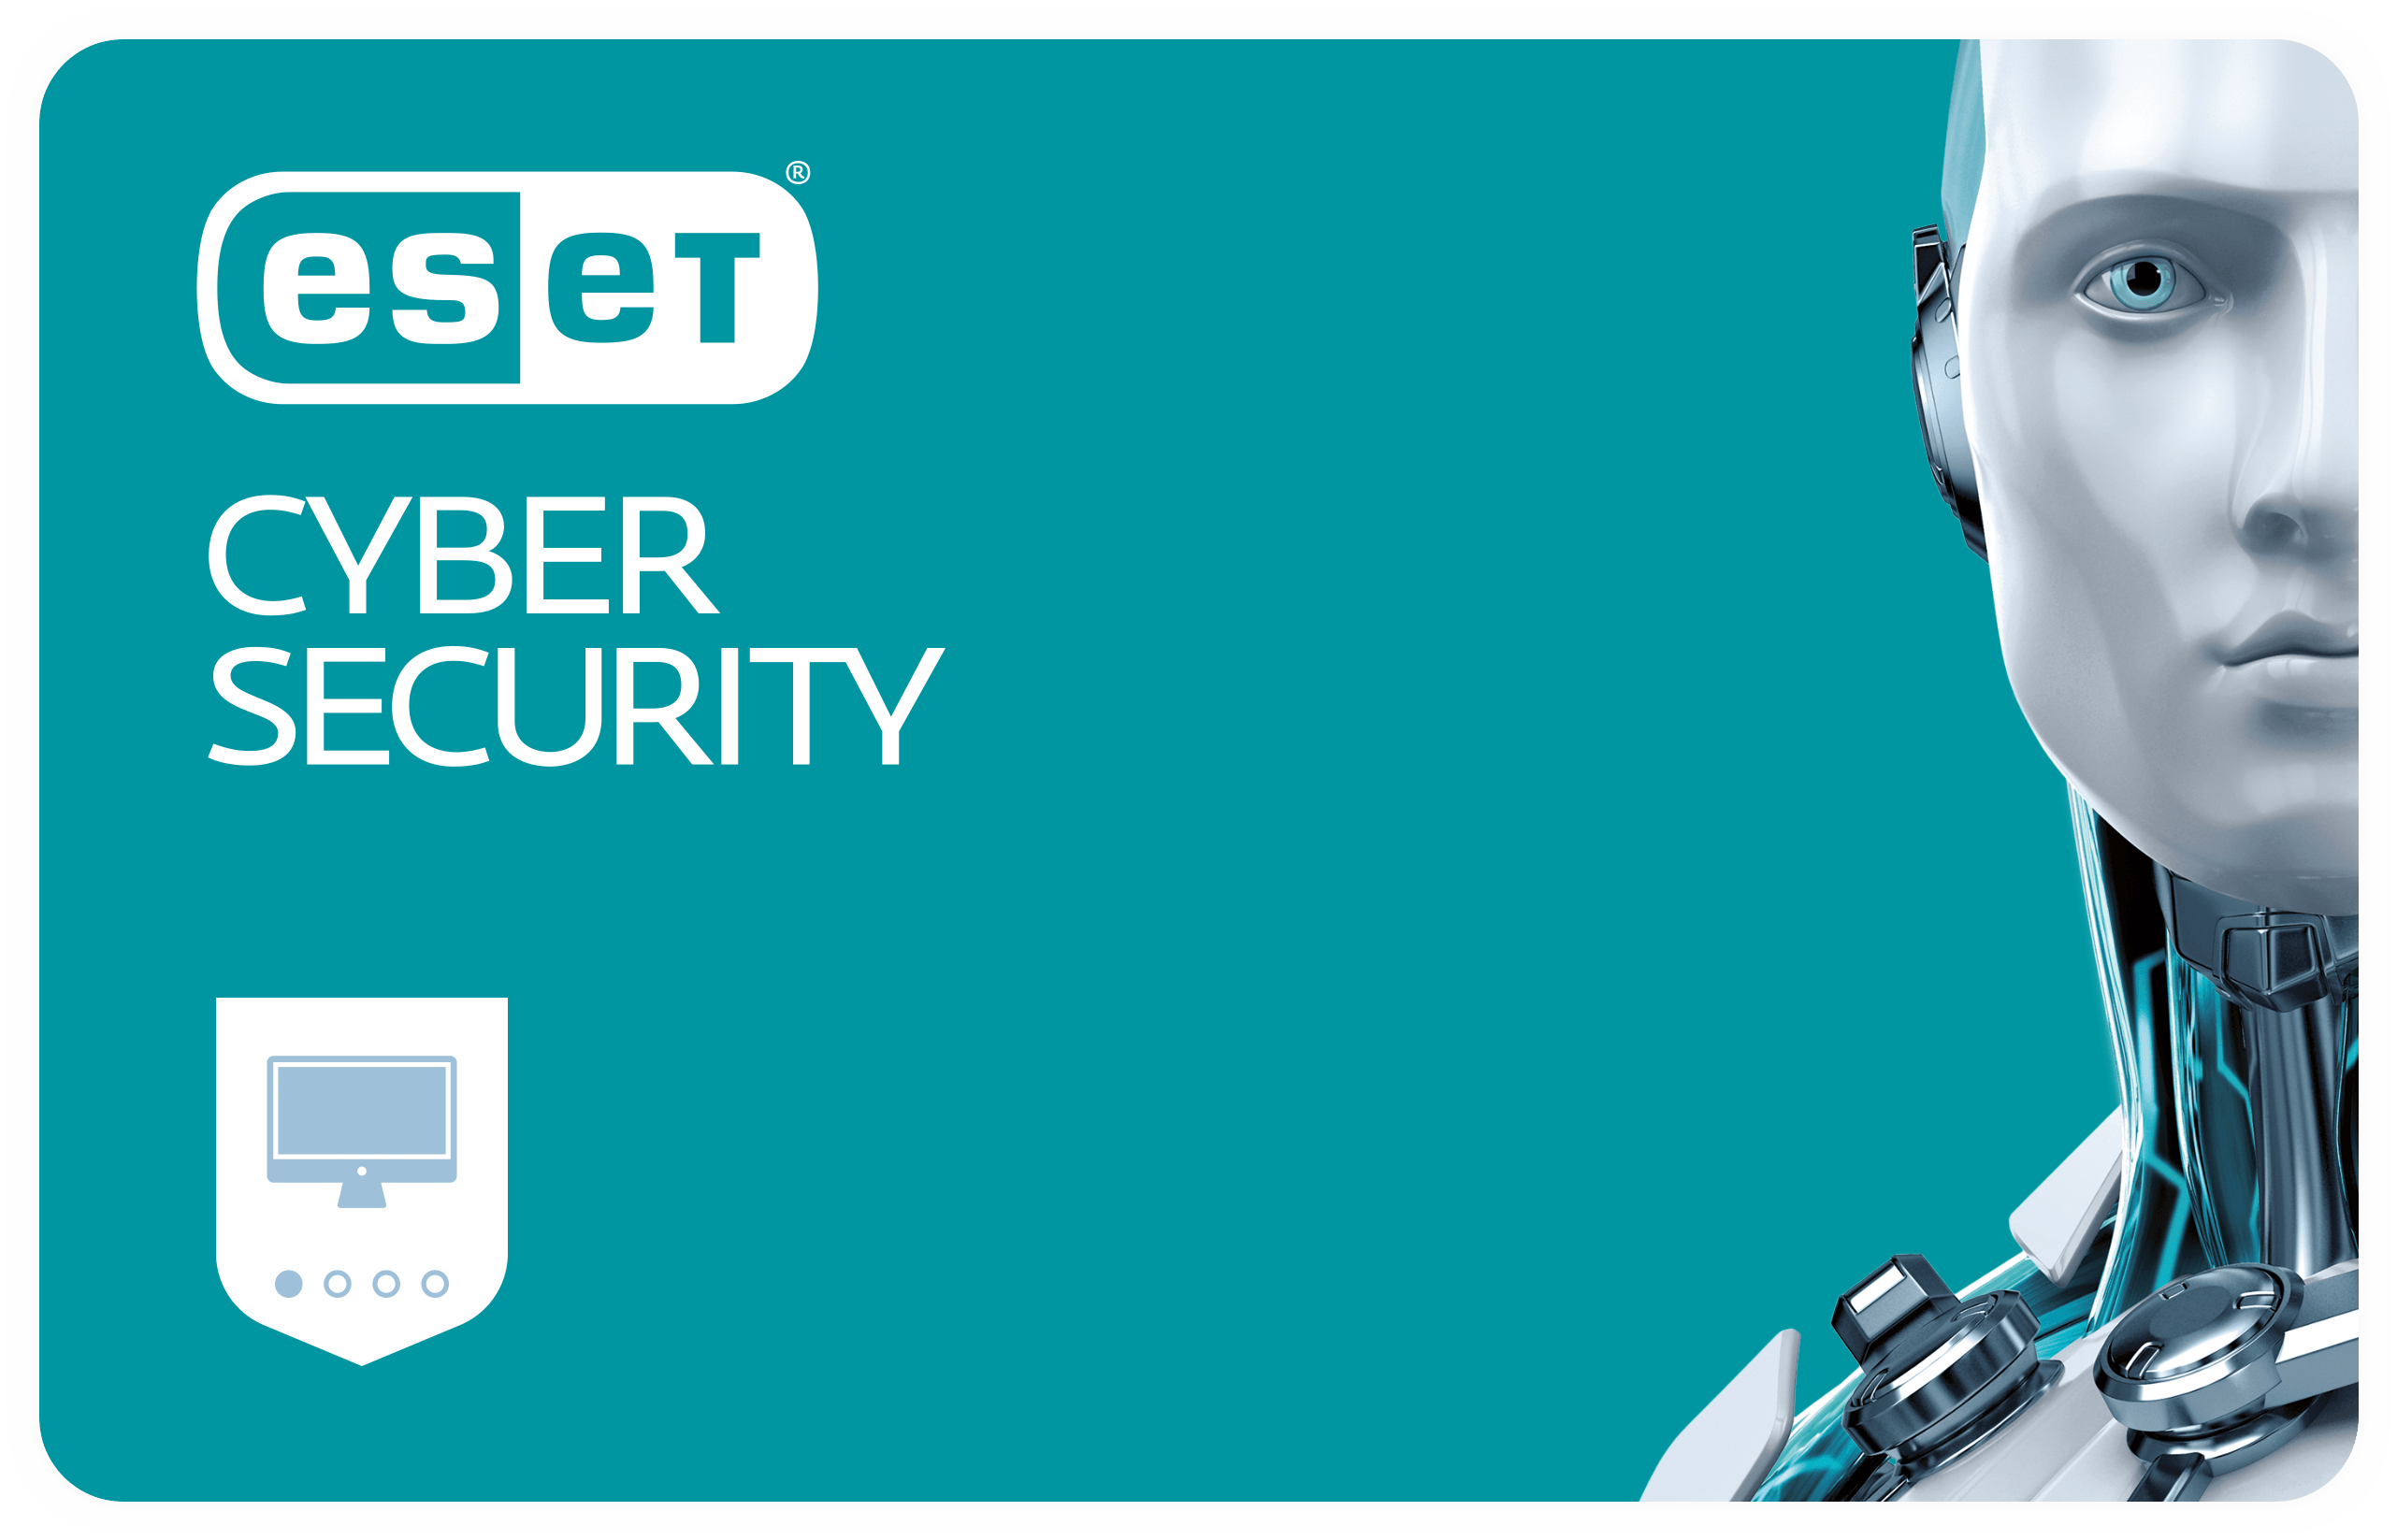 card - ESET Cyber Security